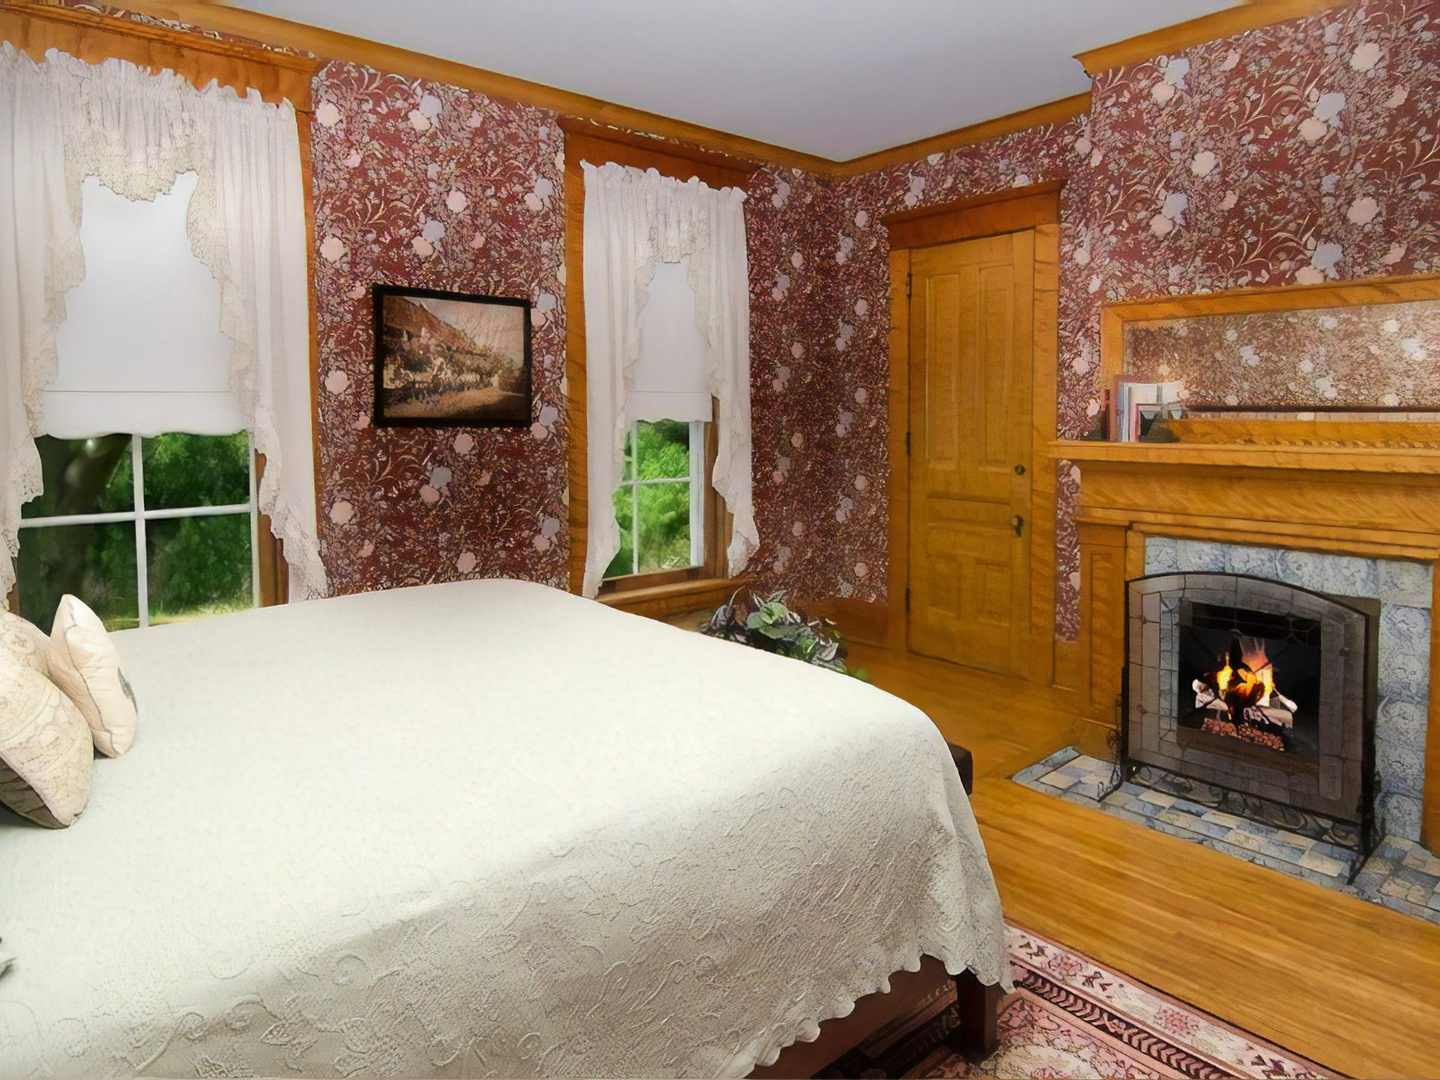 A bedroom with a bed and a fireplace at Phipps Inn Bed & Breakfast.